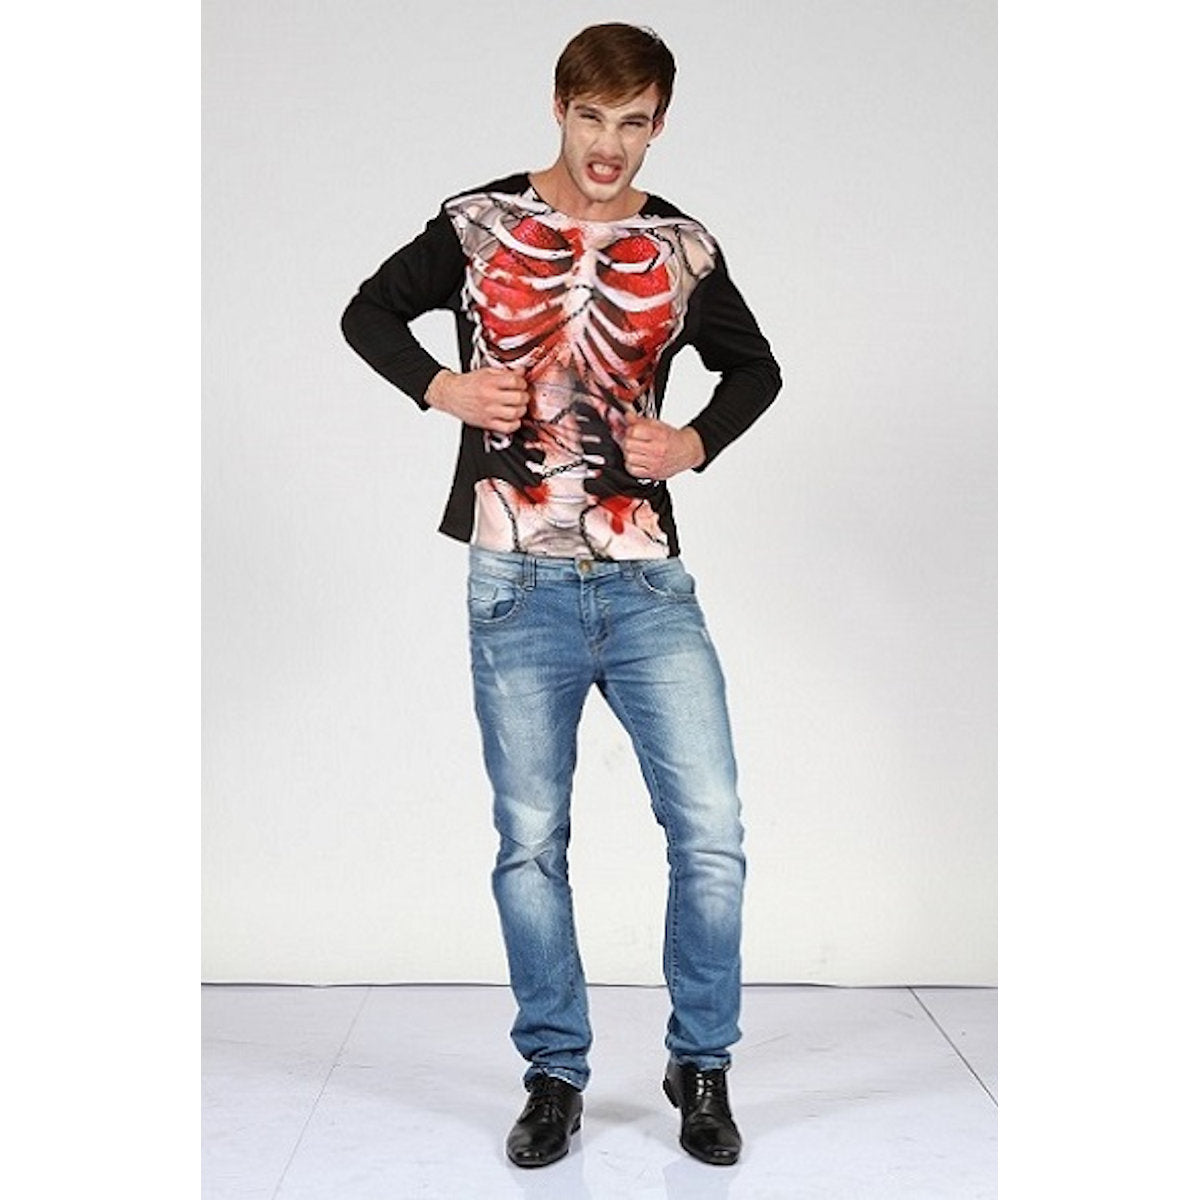 Zombie Skeleton Ripped Apart Printed Shirt